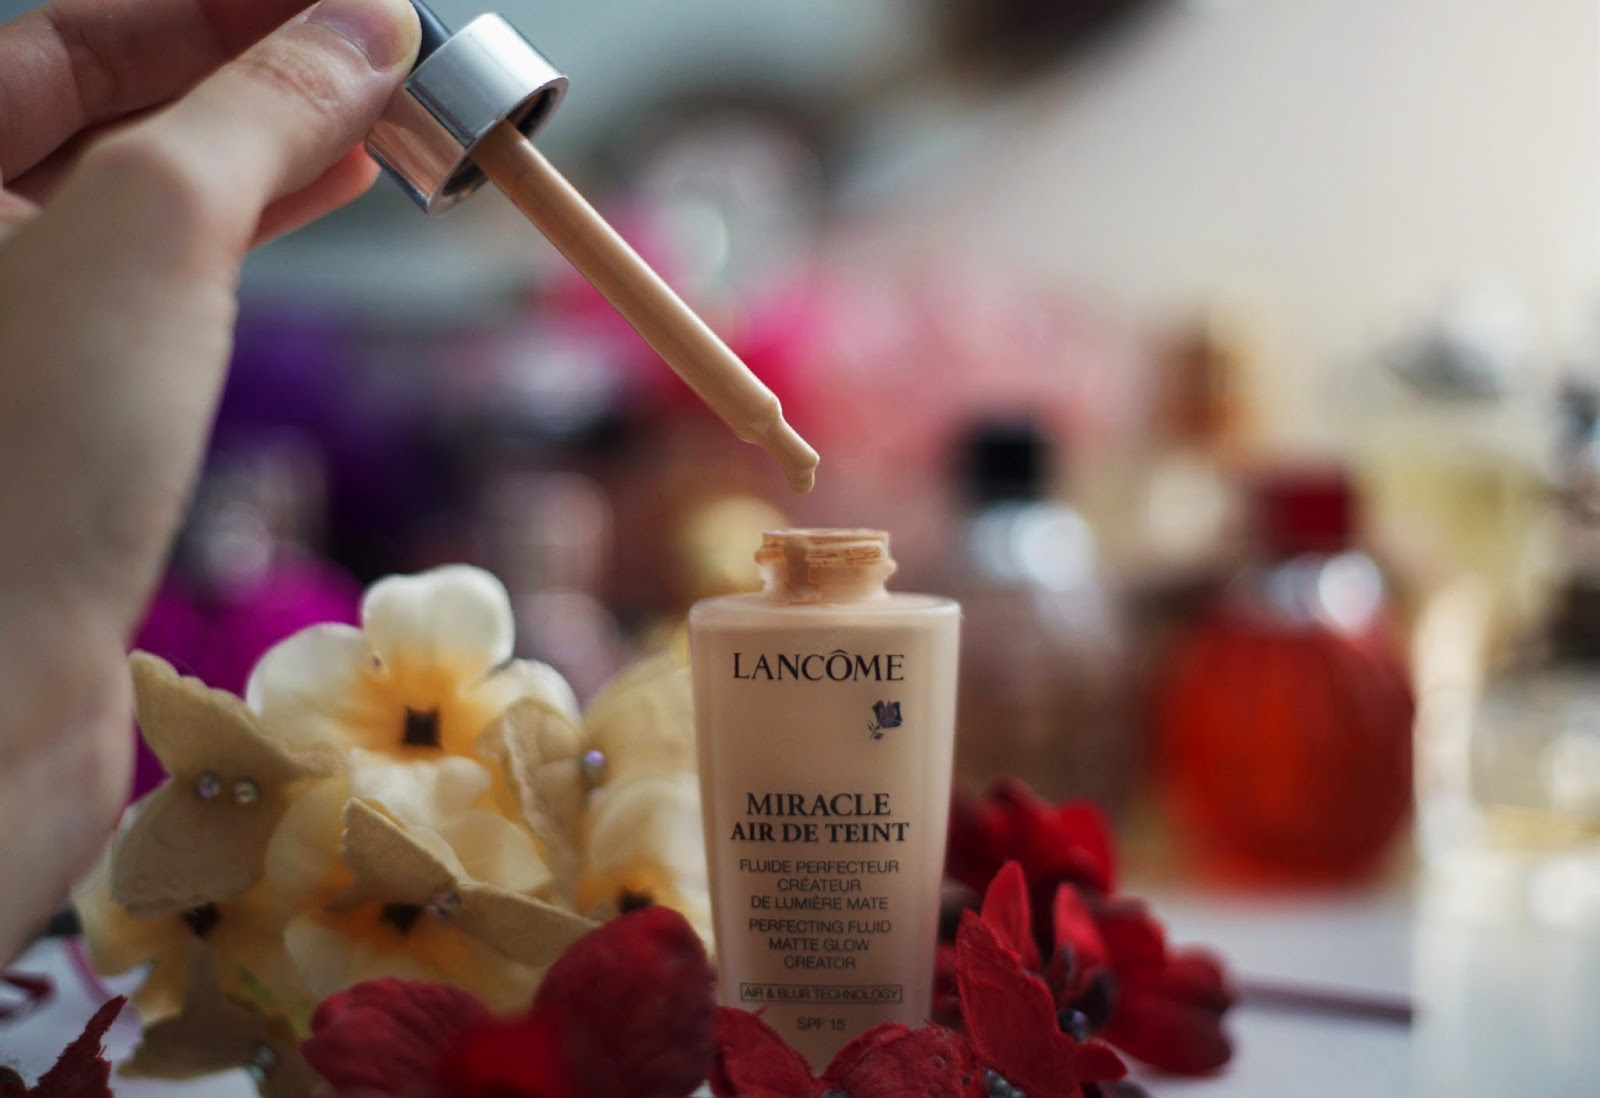 lancome-miracle-air-de-teint-foundation